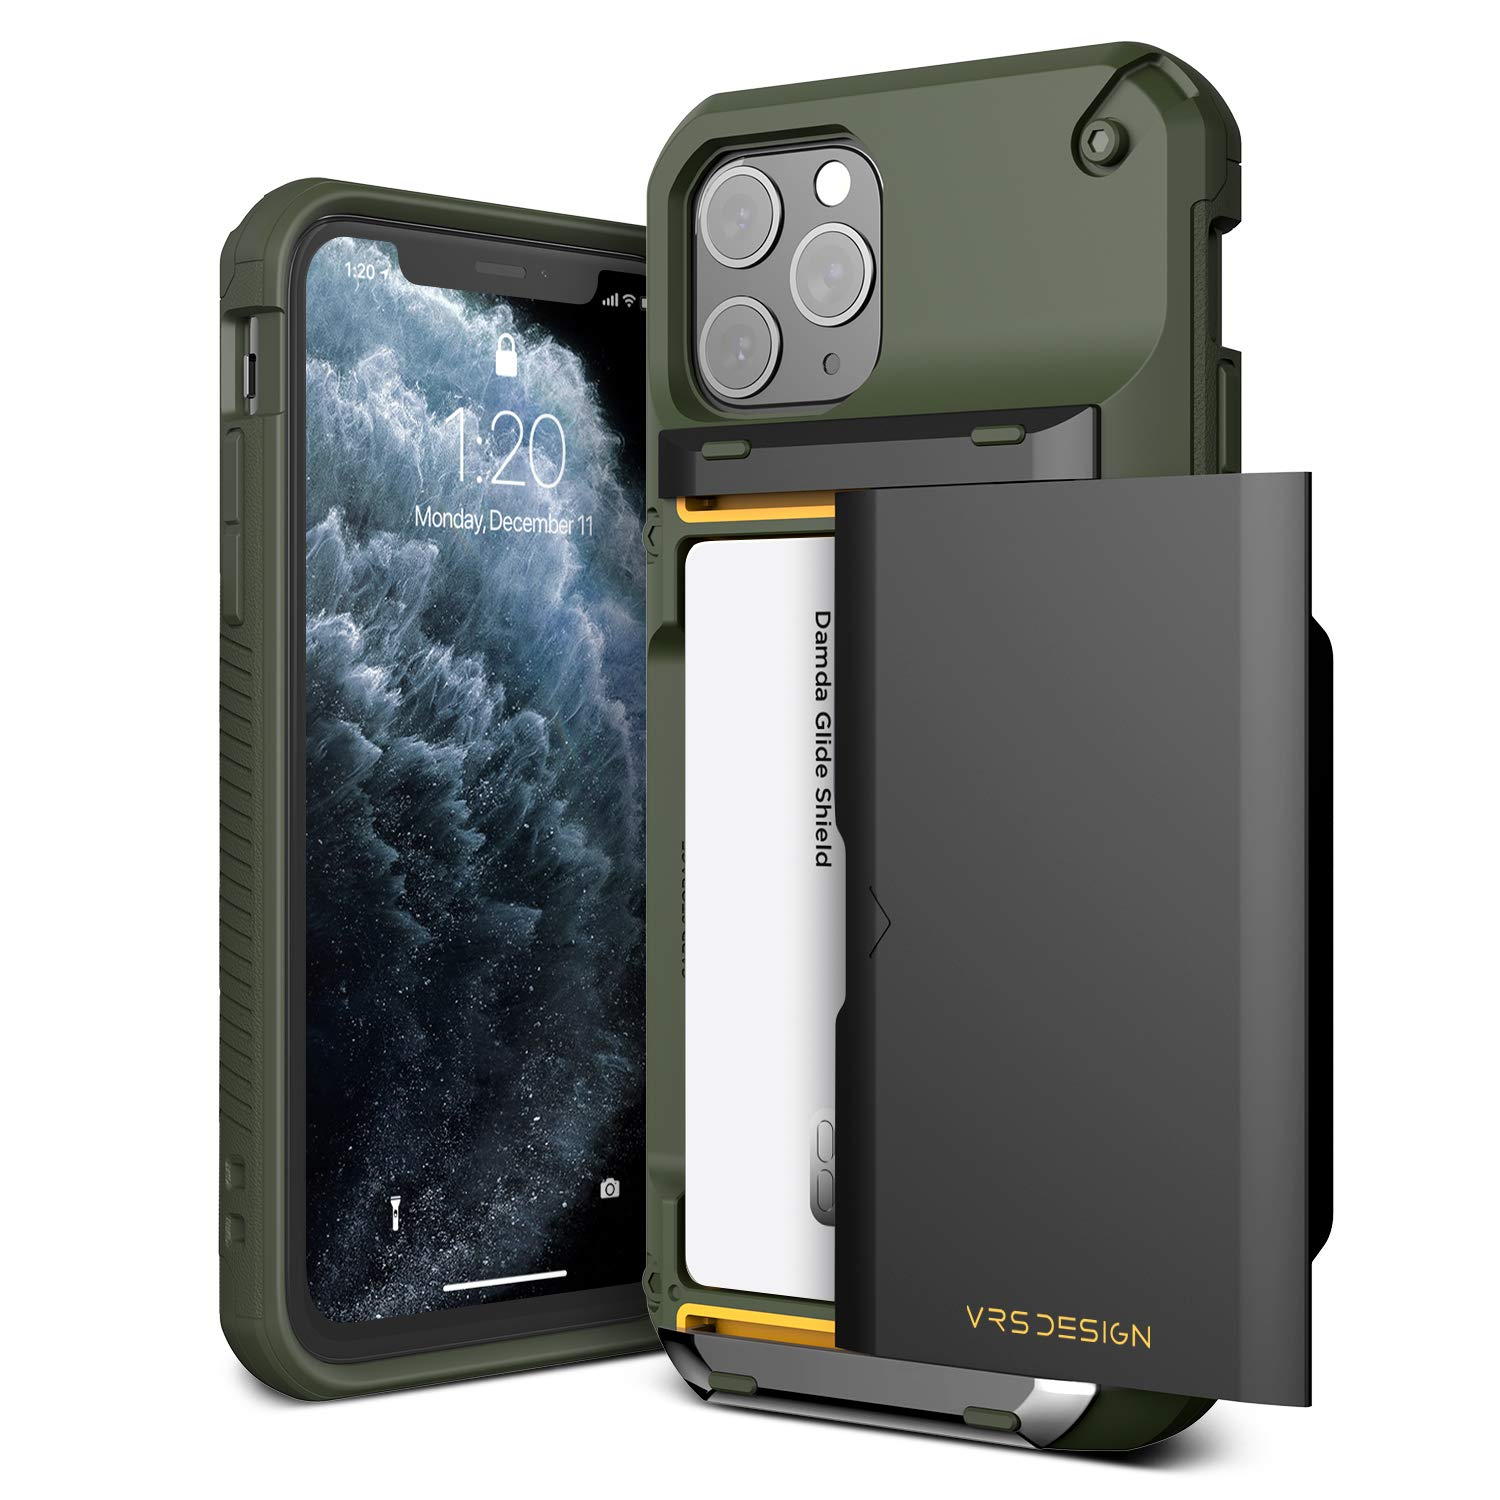 VRS DESIGN Damda Glide Pro Compatible for iPhone 11 Pro Case, with Premium Sturdy Semi Auto Card Wallet for iPhone 11 Pro 5.8 inch(2019) (Green)